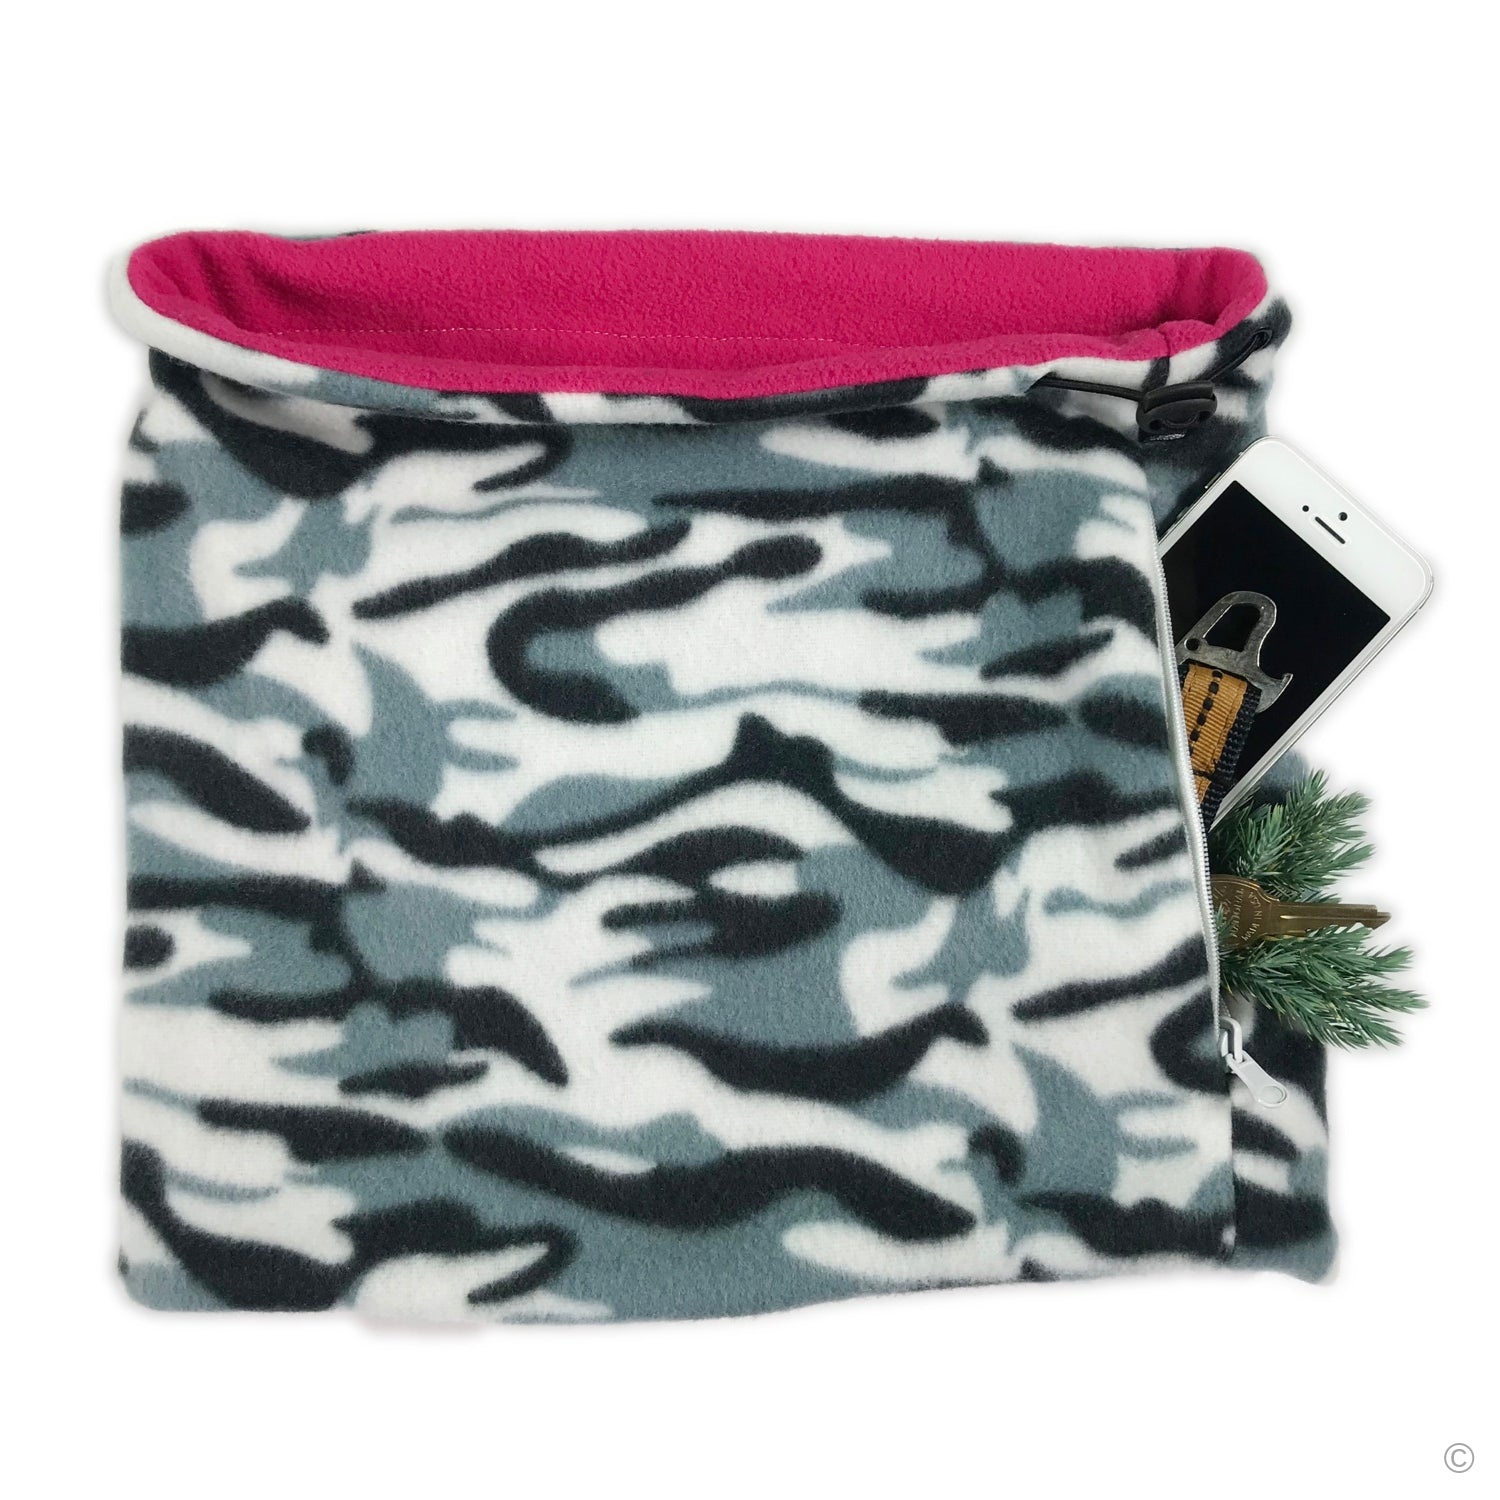 SHOLDIT Convertible Neck Gaiter with Pocket Camouflage Pink